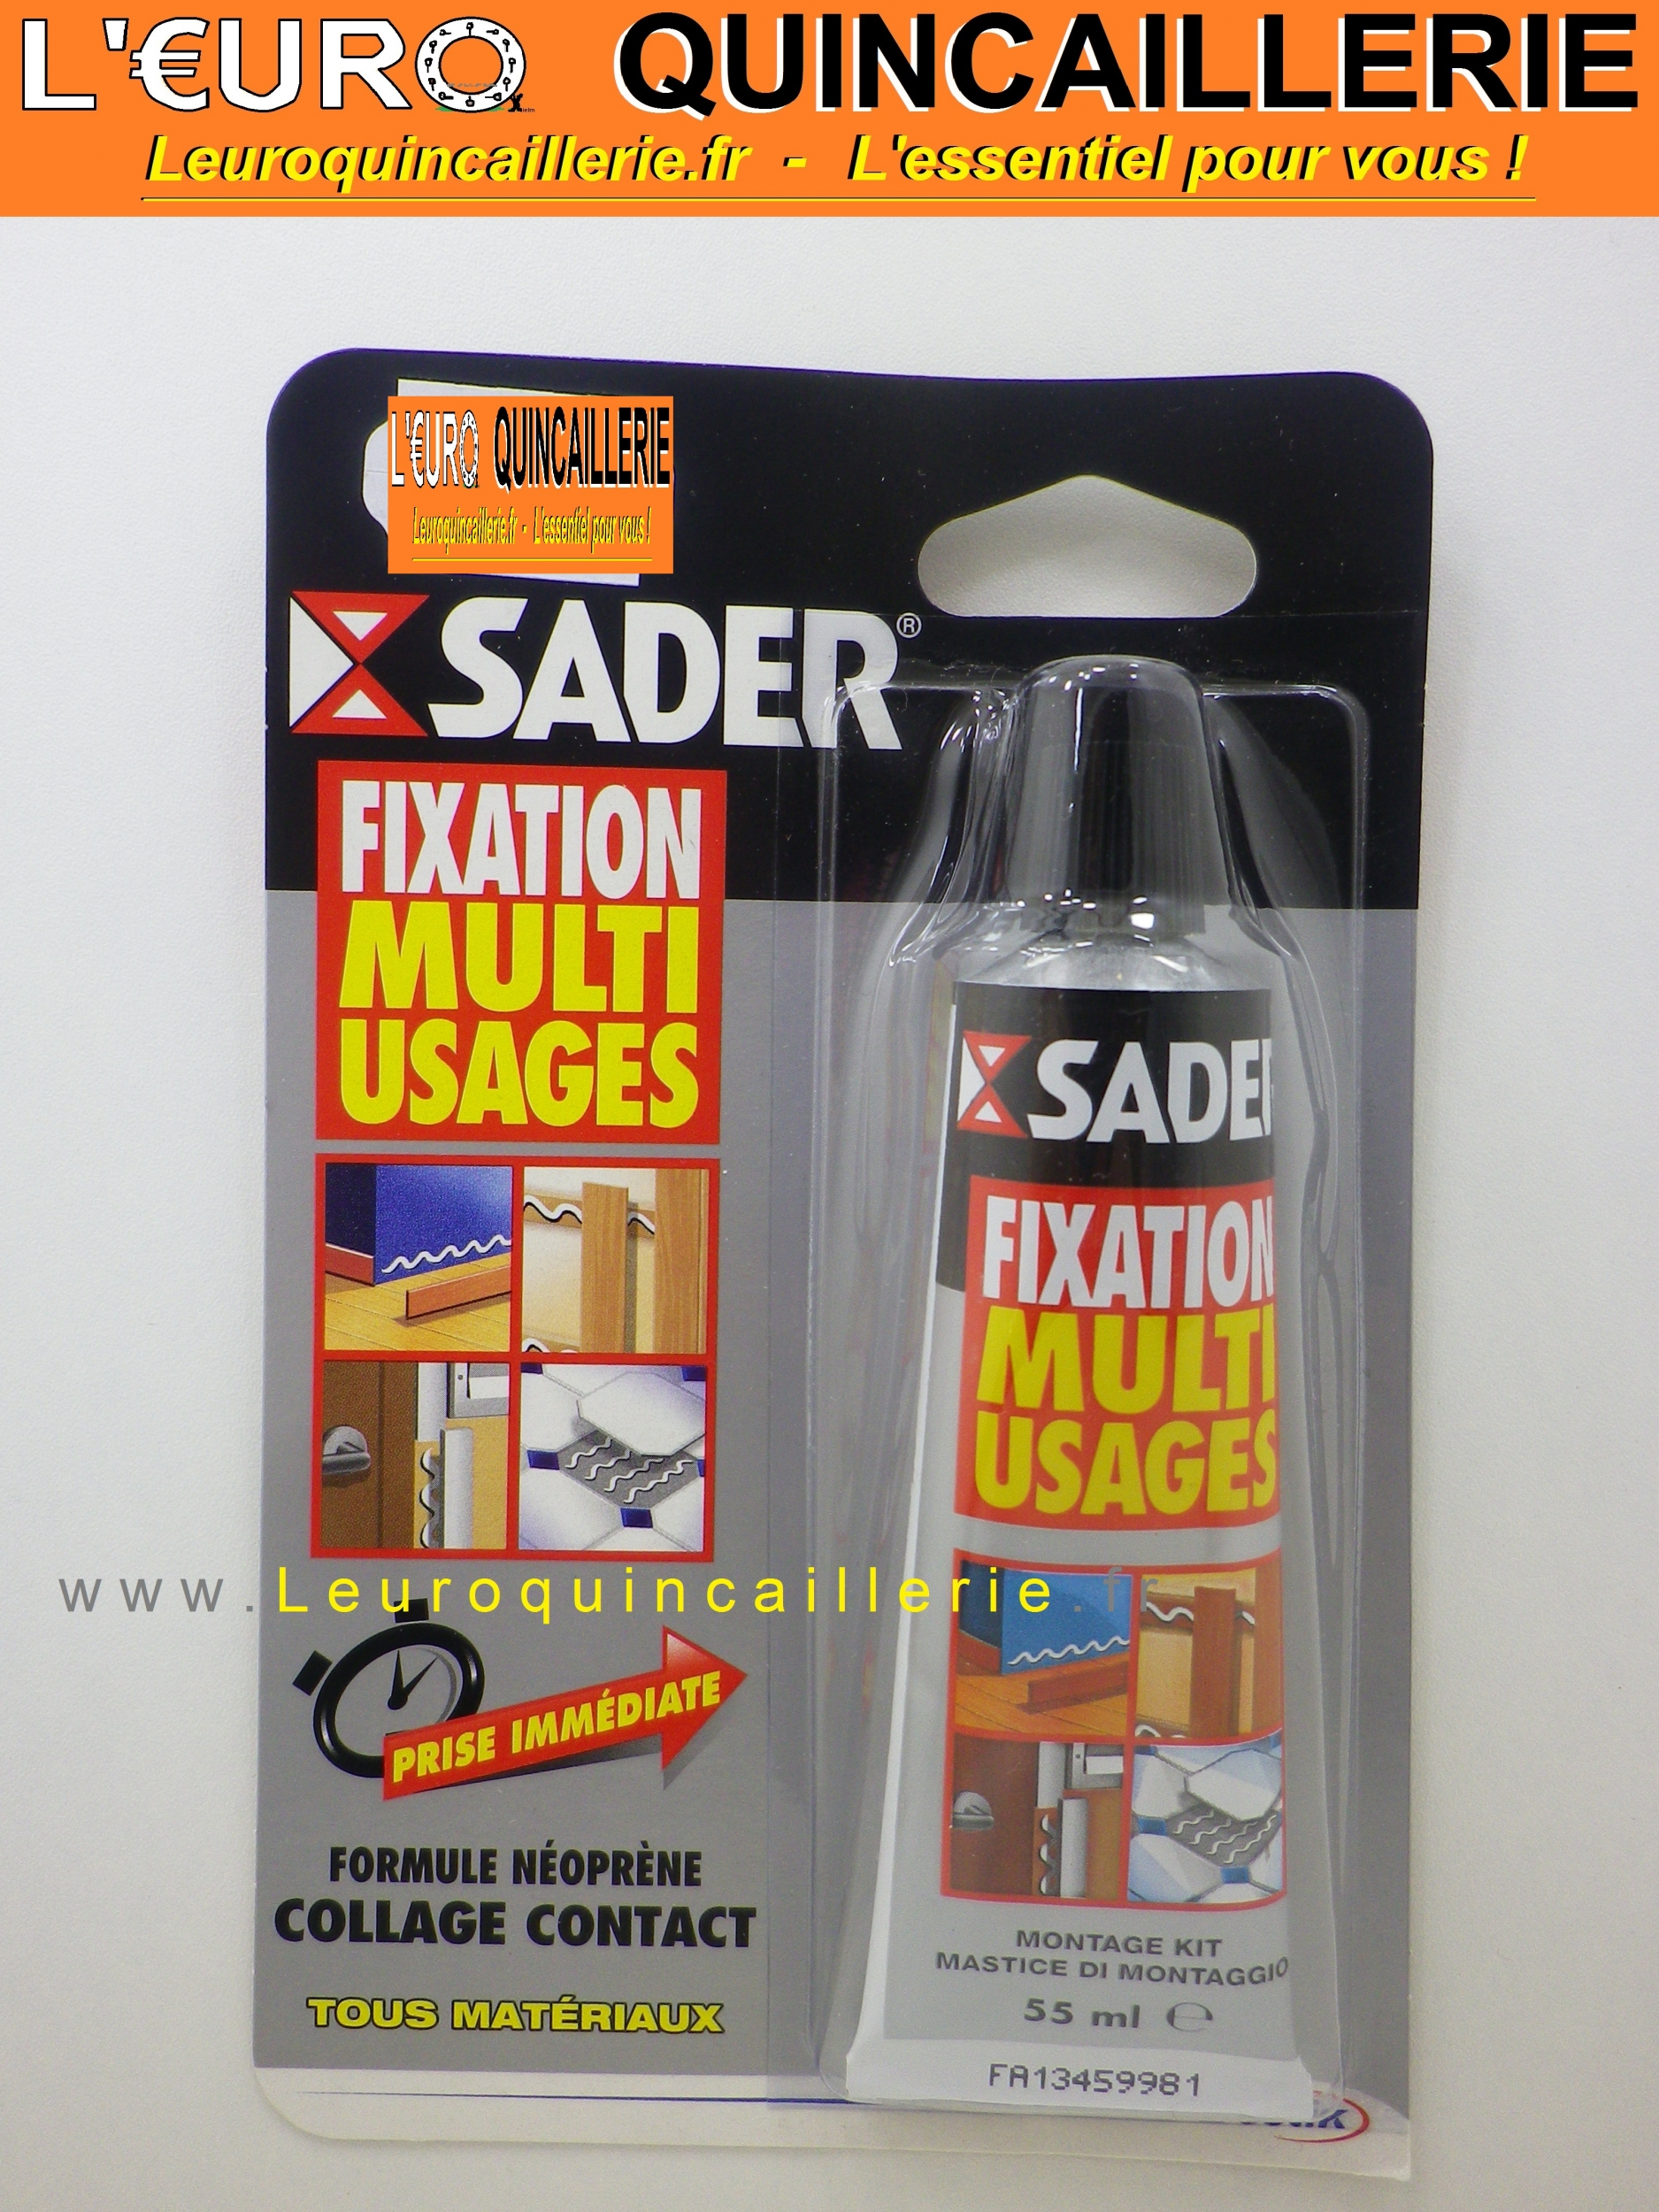 Comment Fixer Un Miroir Sans Percer Beautiful Sader Fixation Multiusage Tous Matriaux Tube Ml